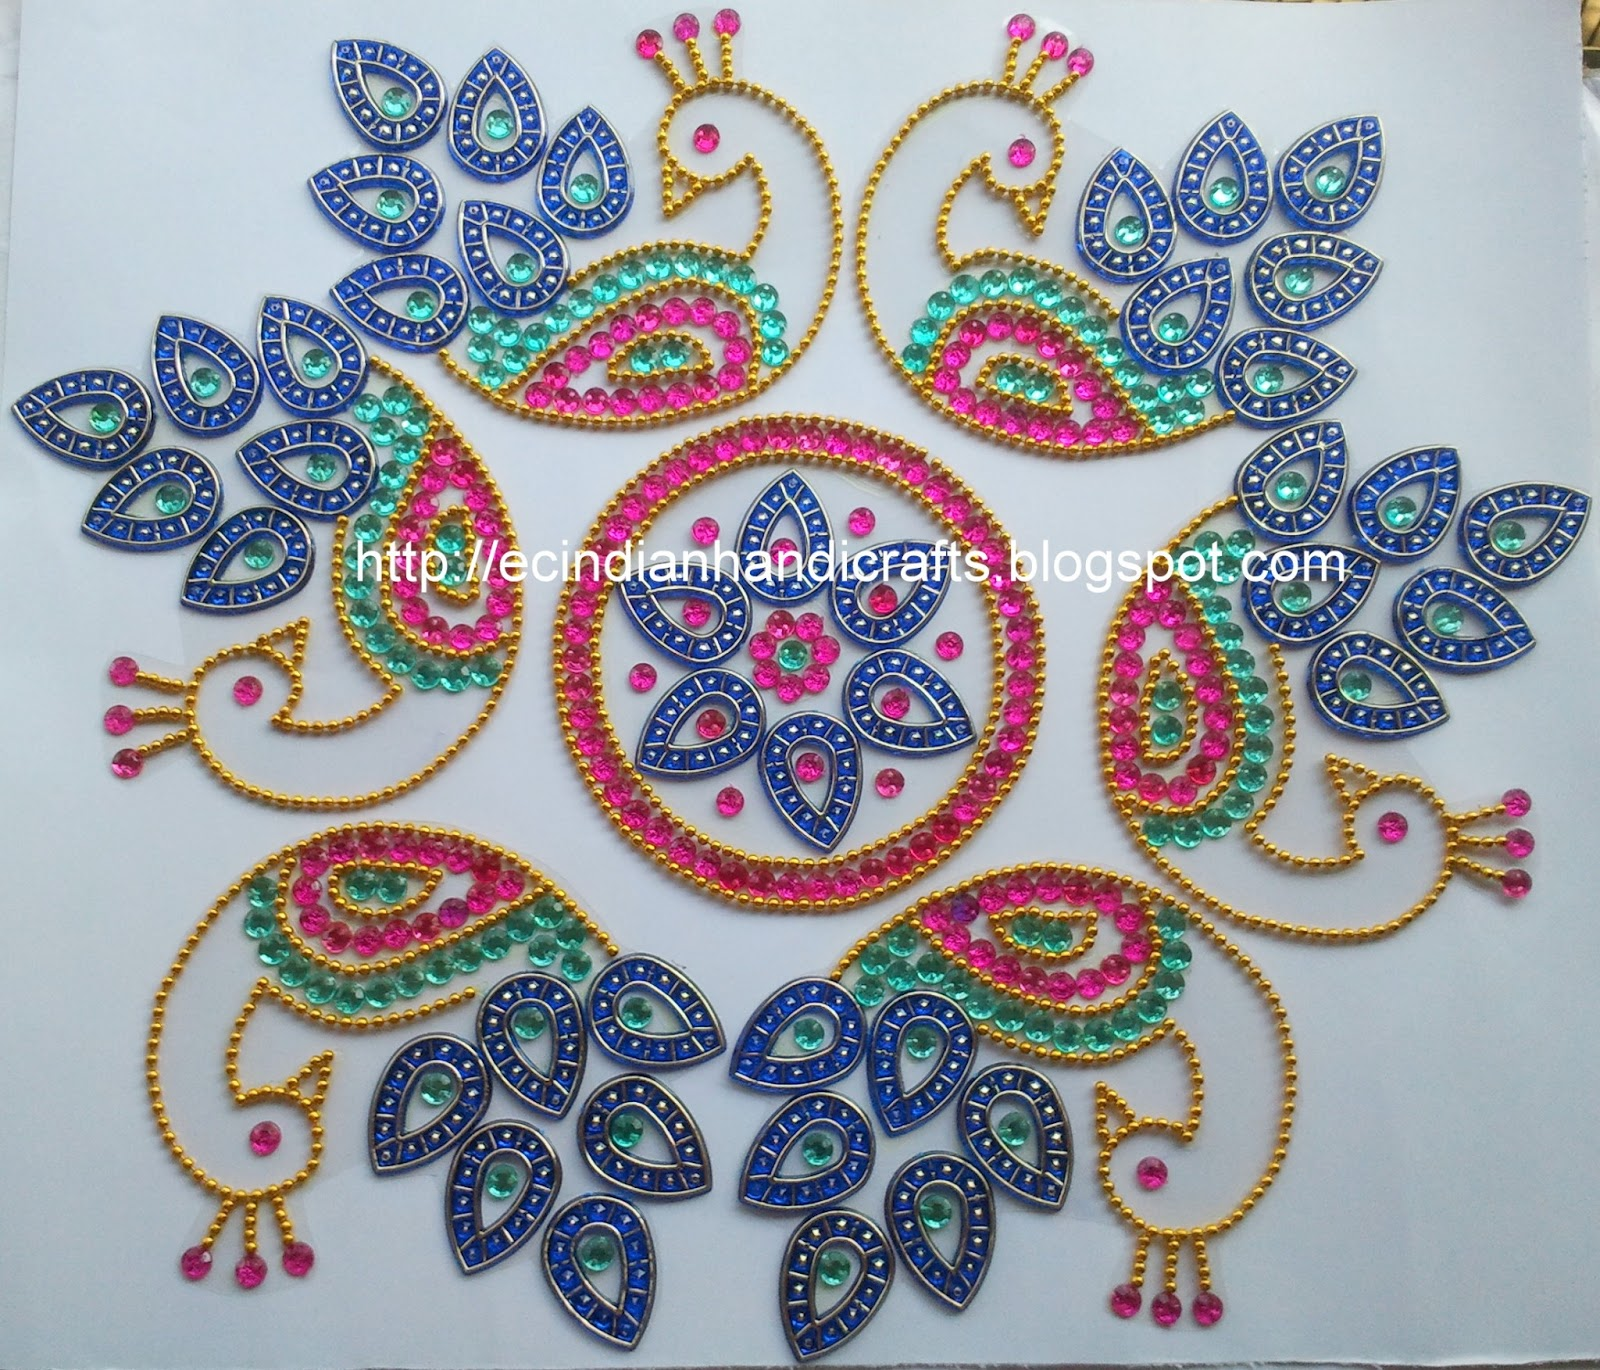 Ec Indian Handicrafts 39 Marapachi Rubber Doll Decorations Peacock Design Kundan Rangoli